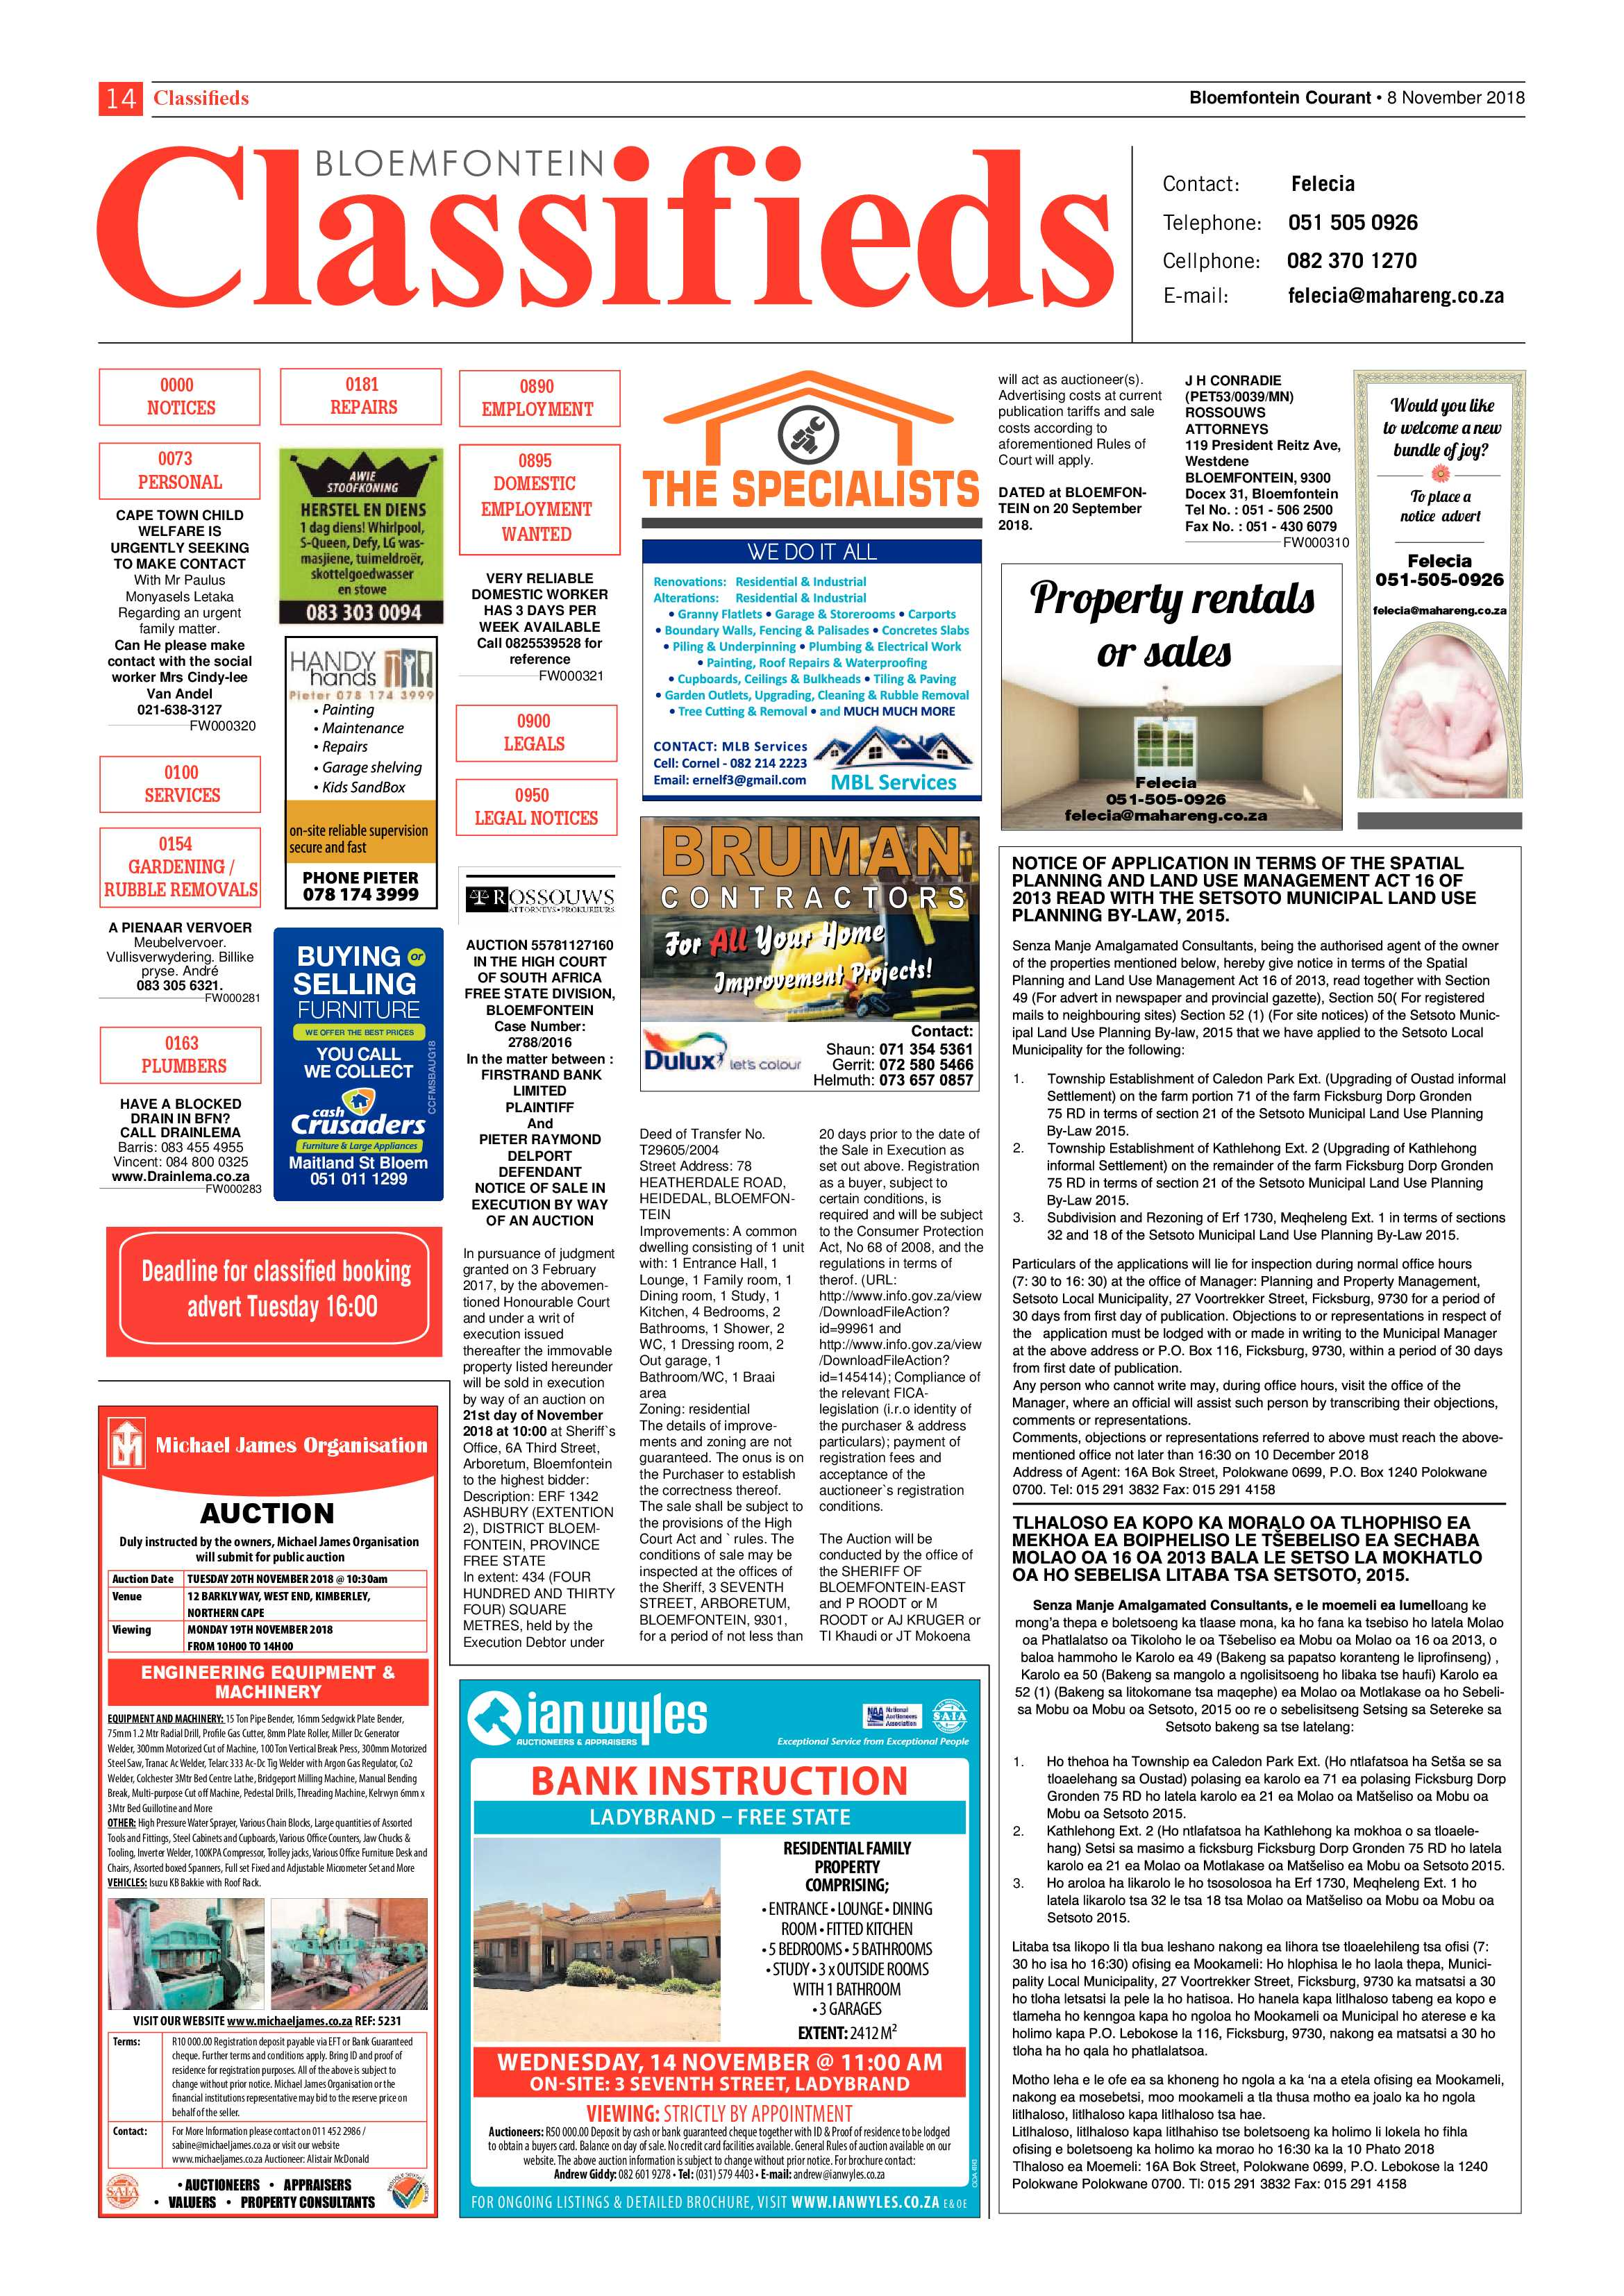 courant-8-november-2018-epapers-page-14